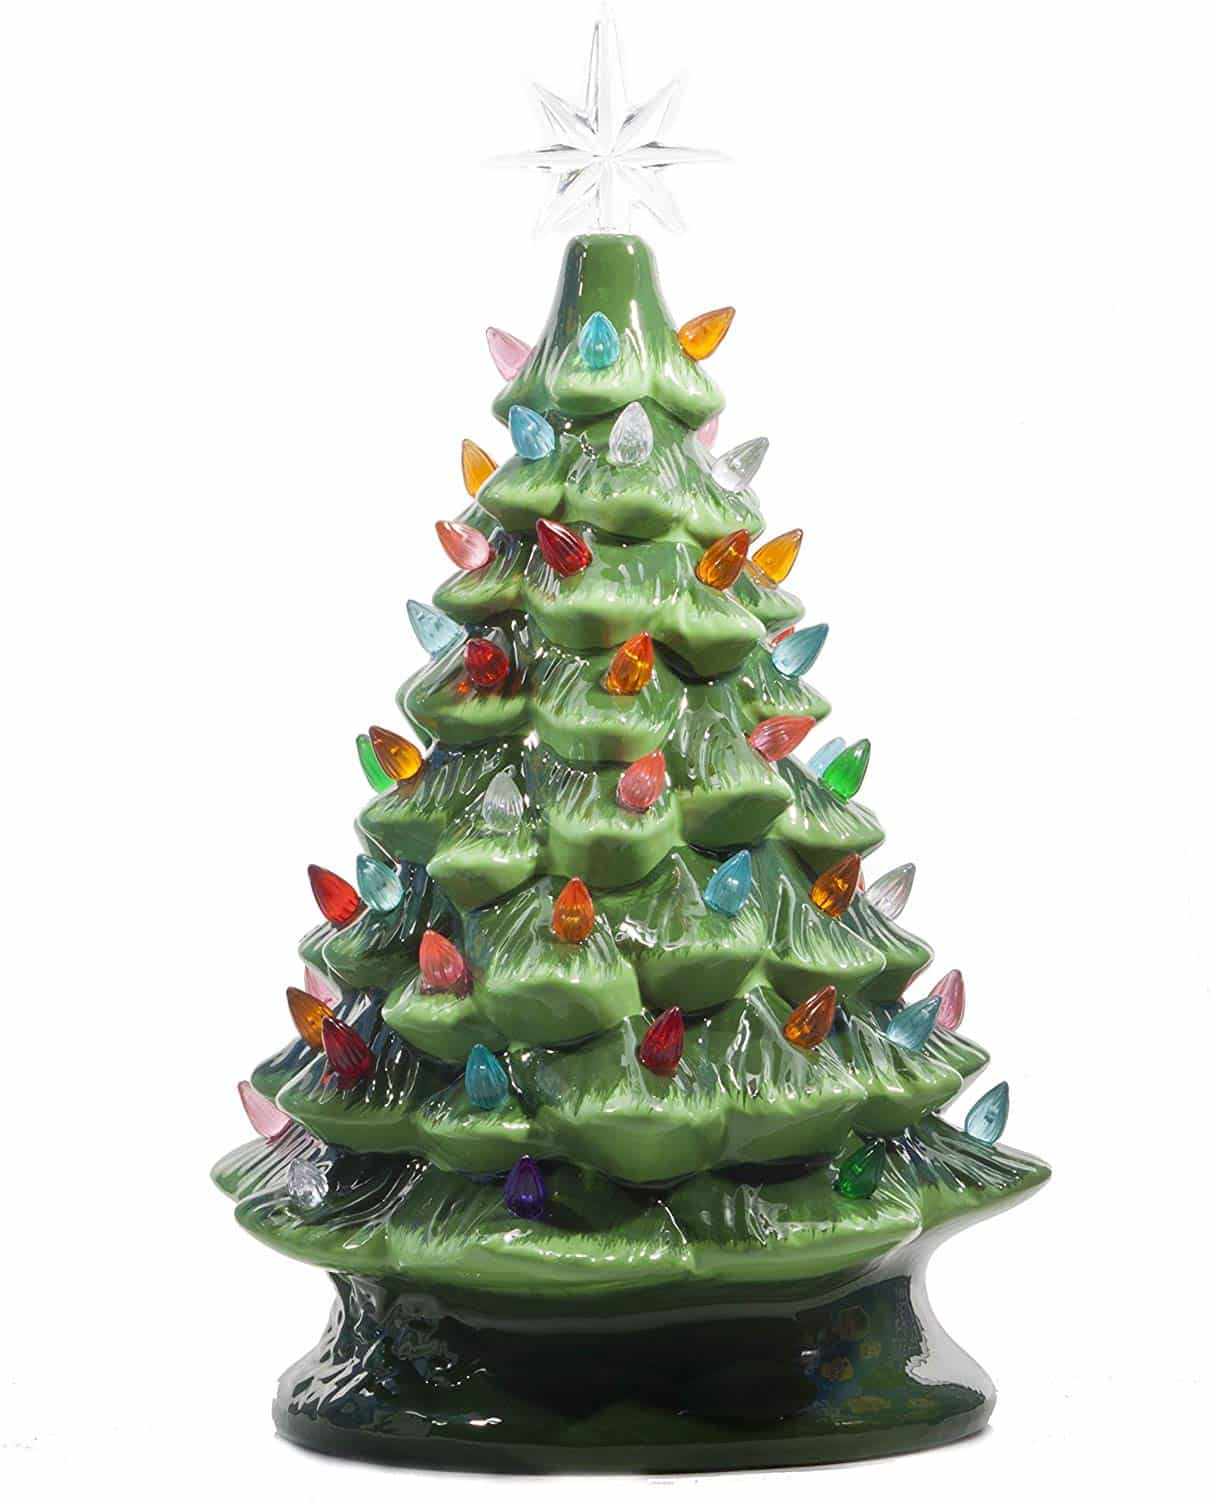 Relive Christmas Ceramic Tree